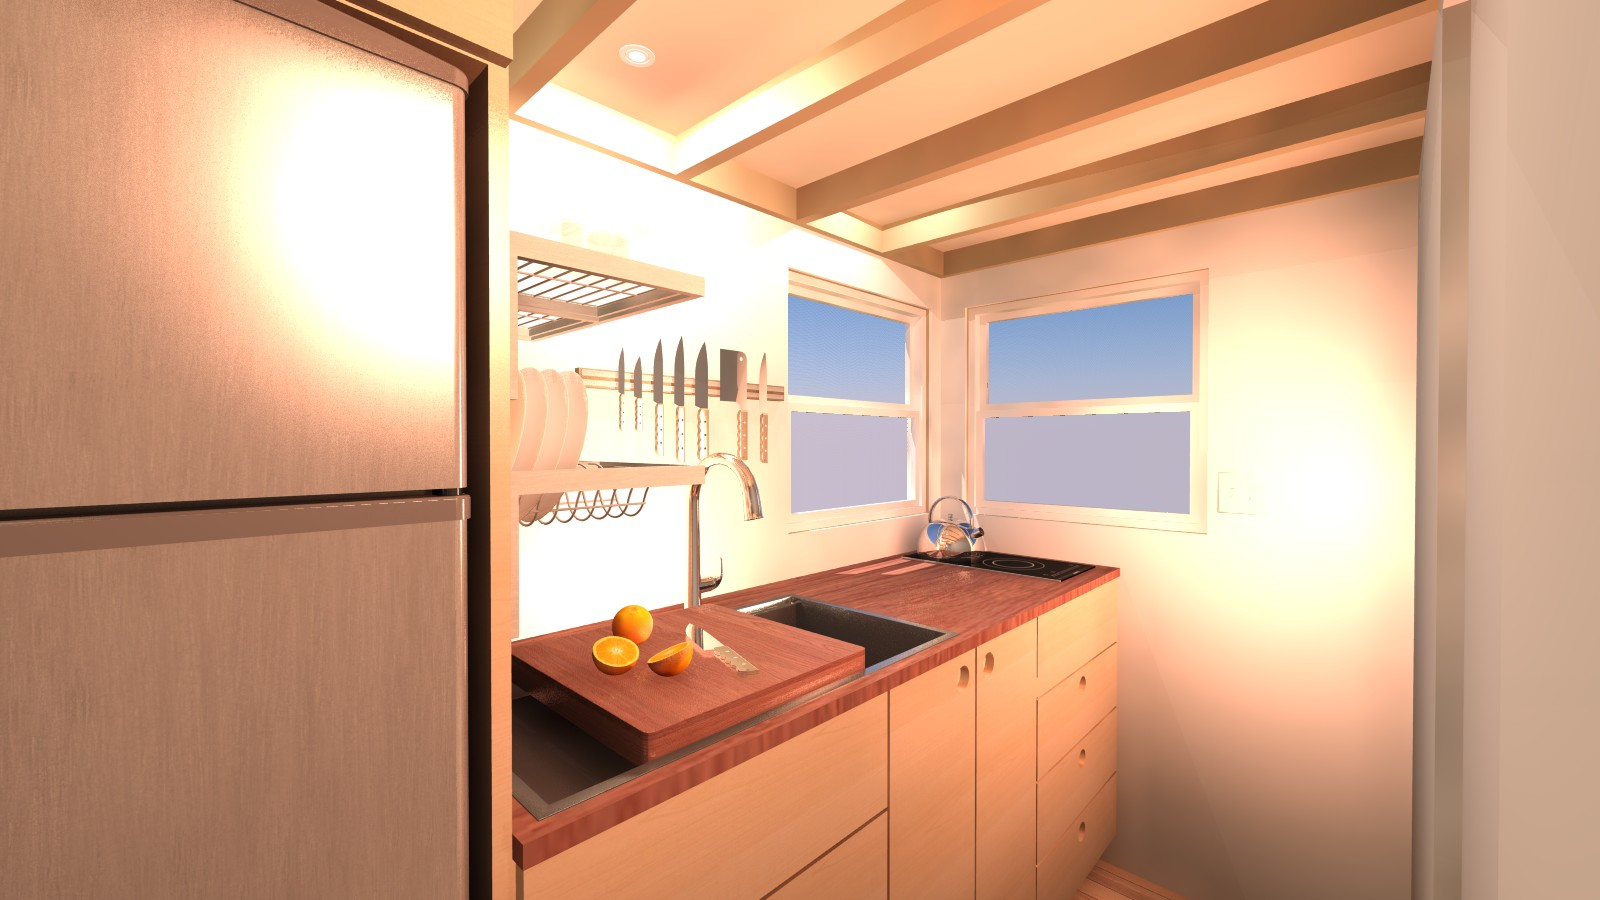 Cleone 16 tiny house plans Leon house kitchen design